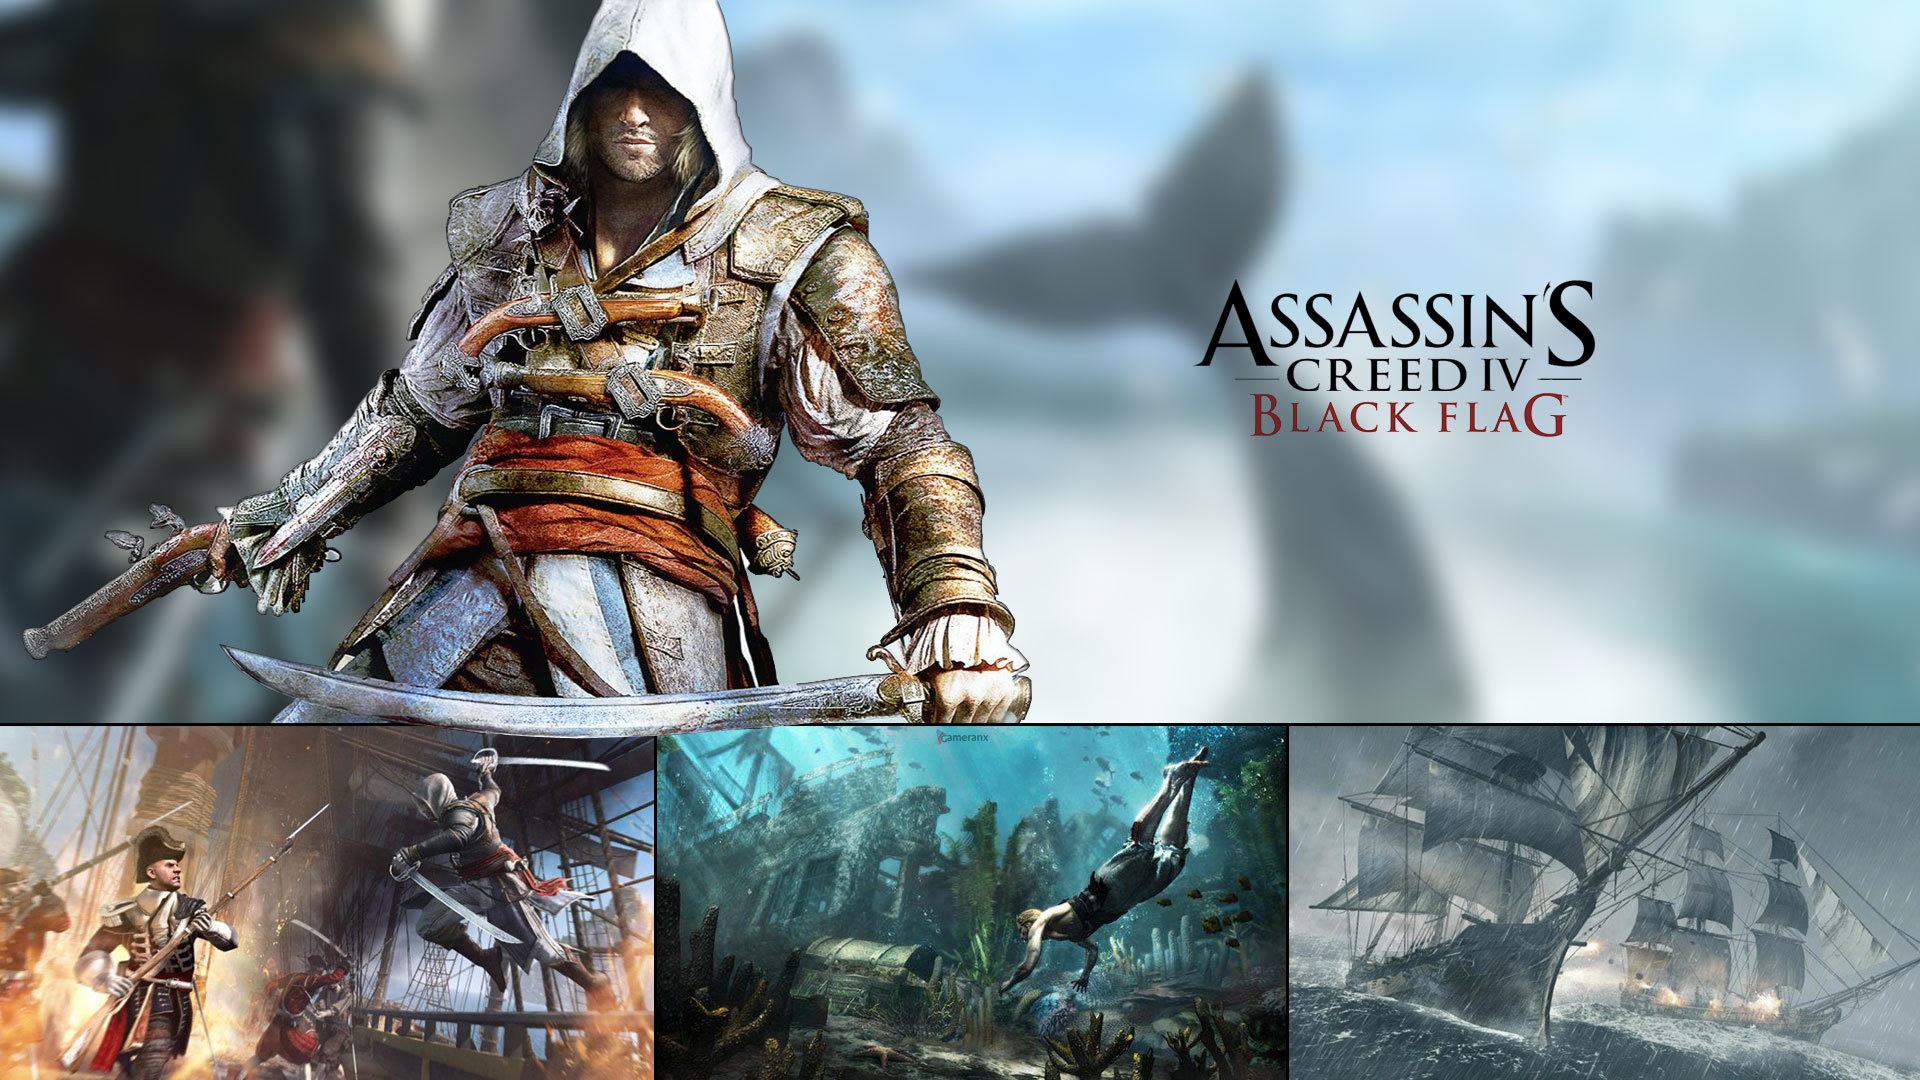 Download The Assassin S Creed Iv Black Flag Wallpapers: Ac4 Black Flag Wallpaper (81+ Images